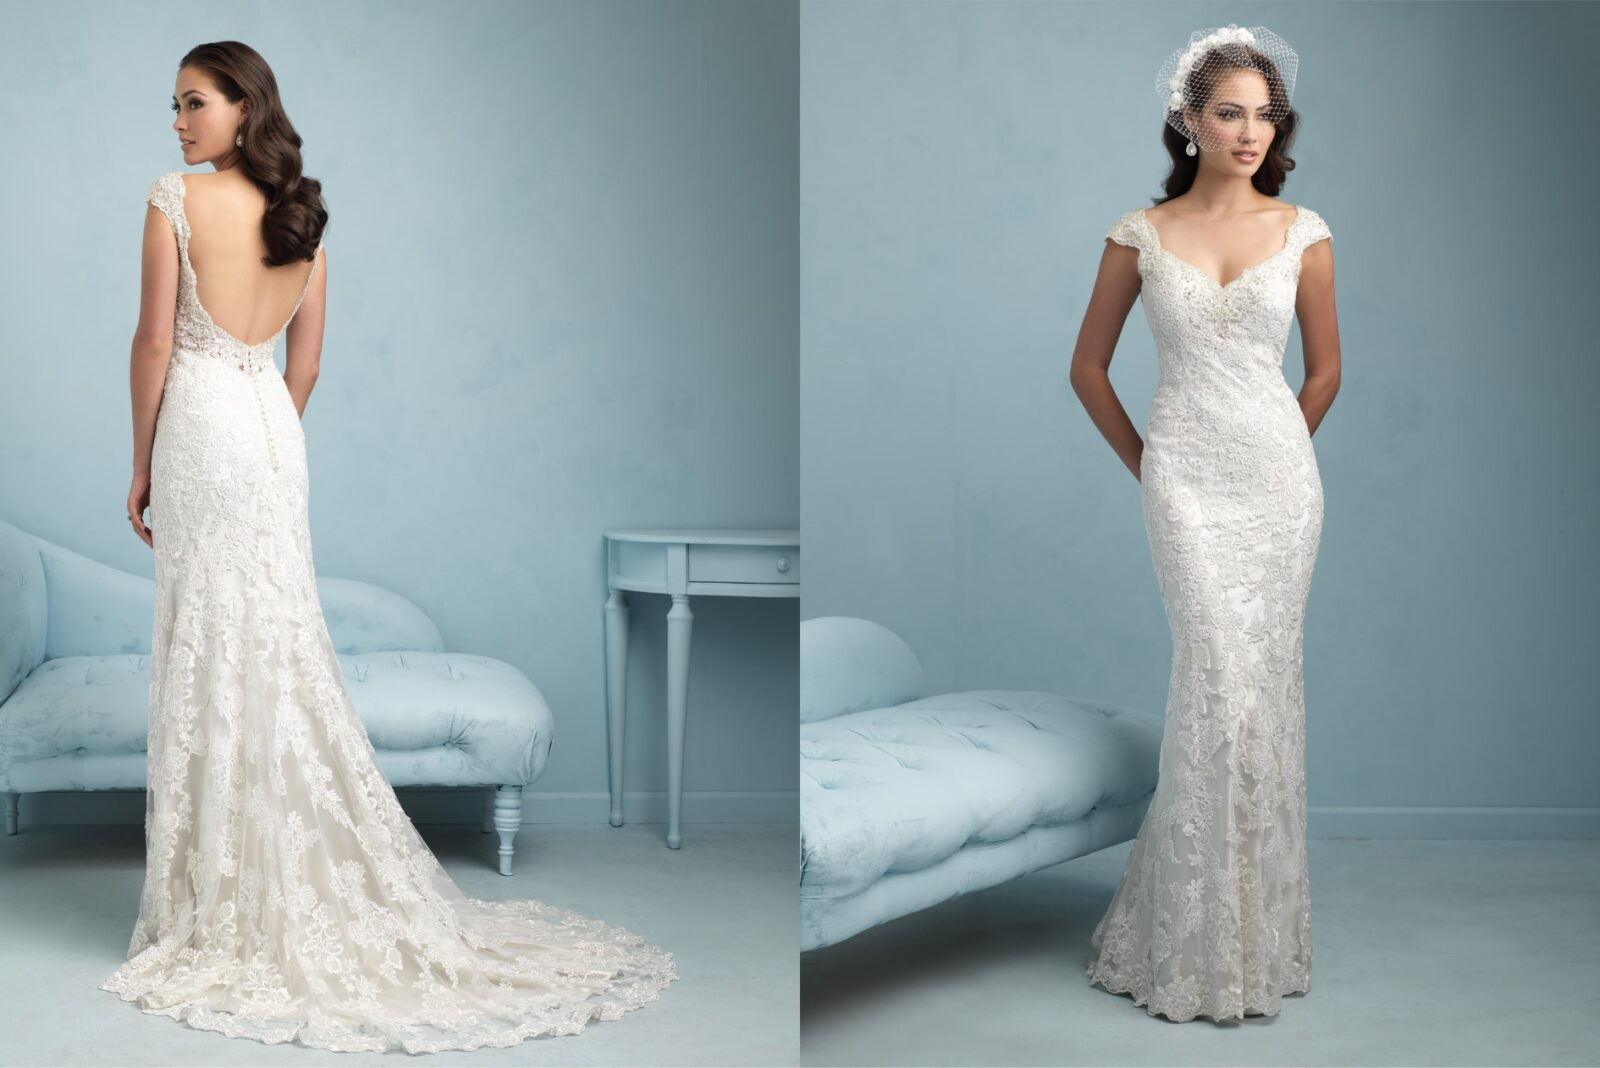 June 2015 wedding dress of the month embrace bridal boutique june 2015 wedding dress of the month ombrellifo Images